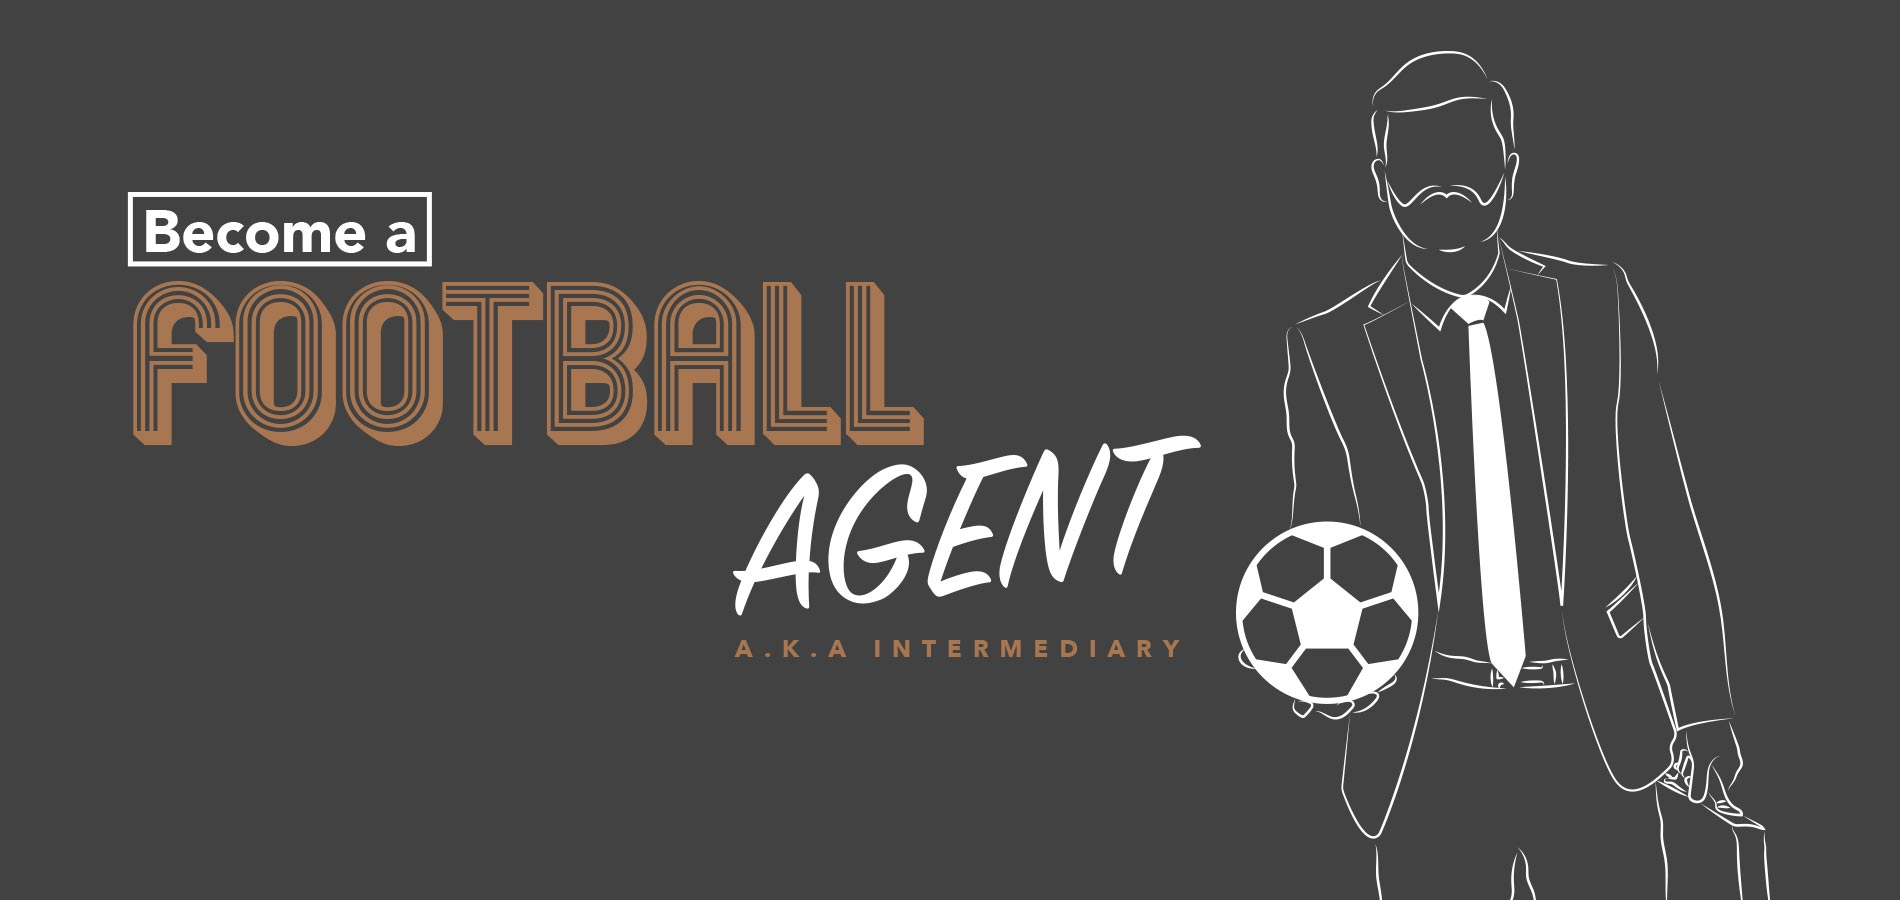 How to Become a Football Agent (A.K.A Intermediary)